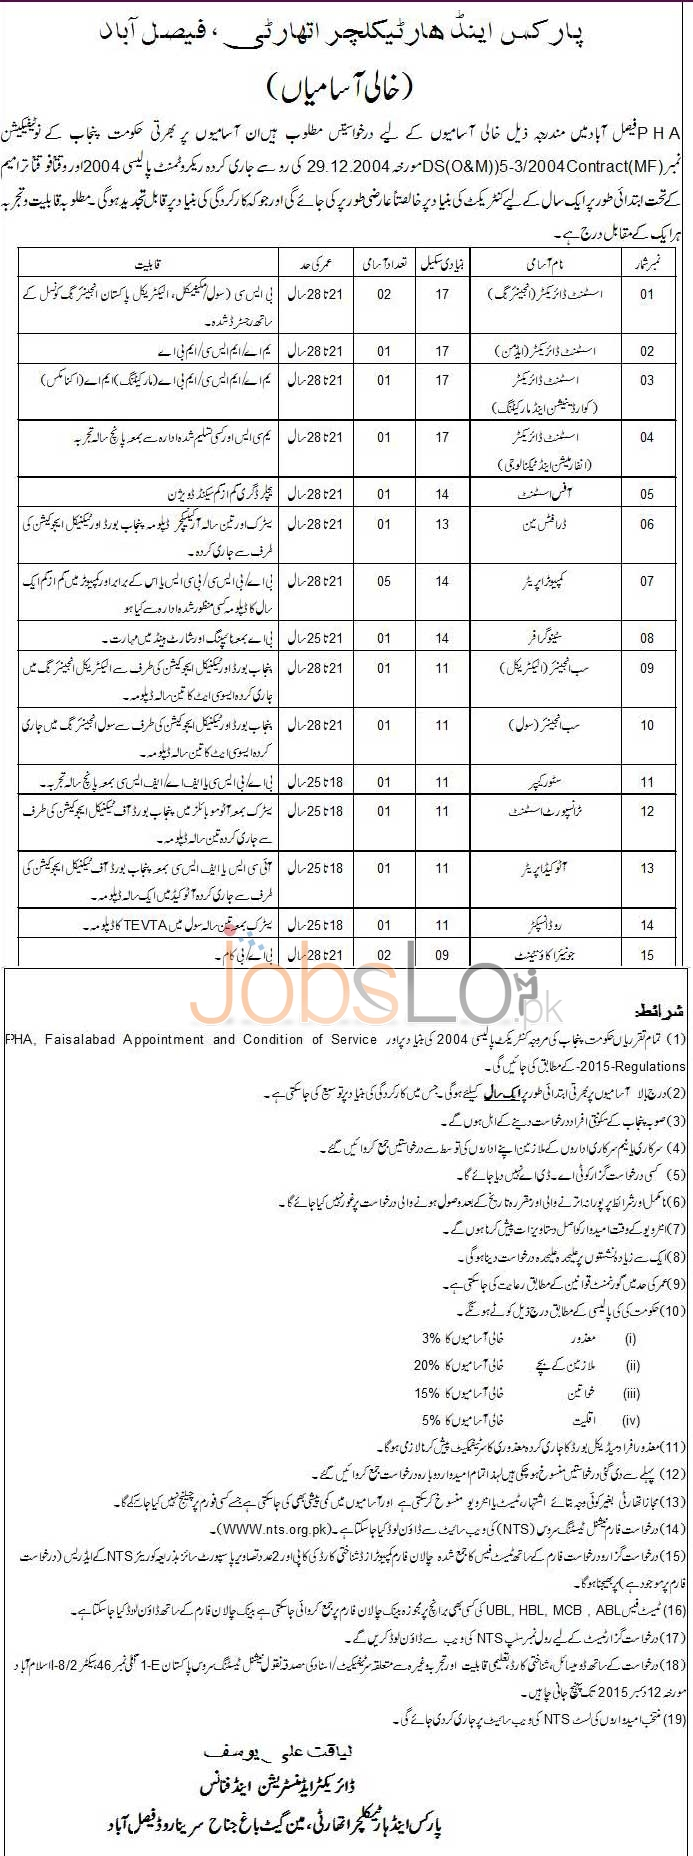 Parks and Horticulture Authority PHA Faisalabad Jobs 2015 NTS Form  